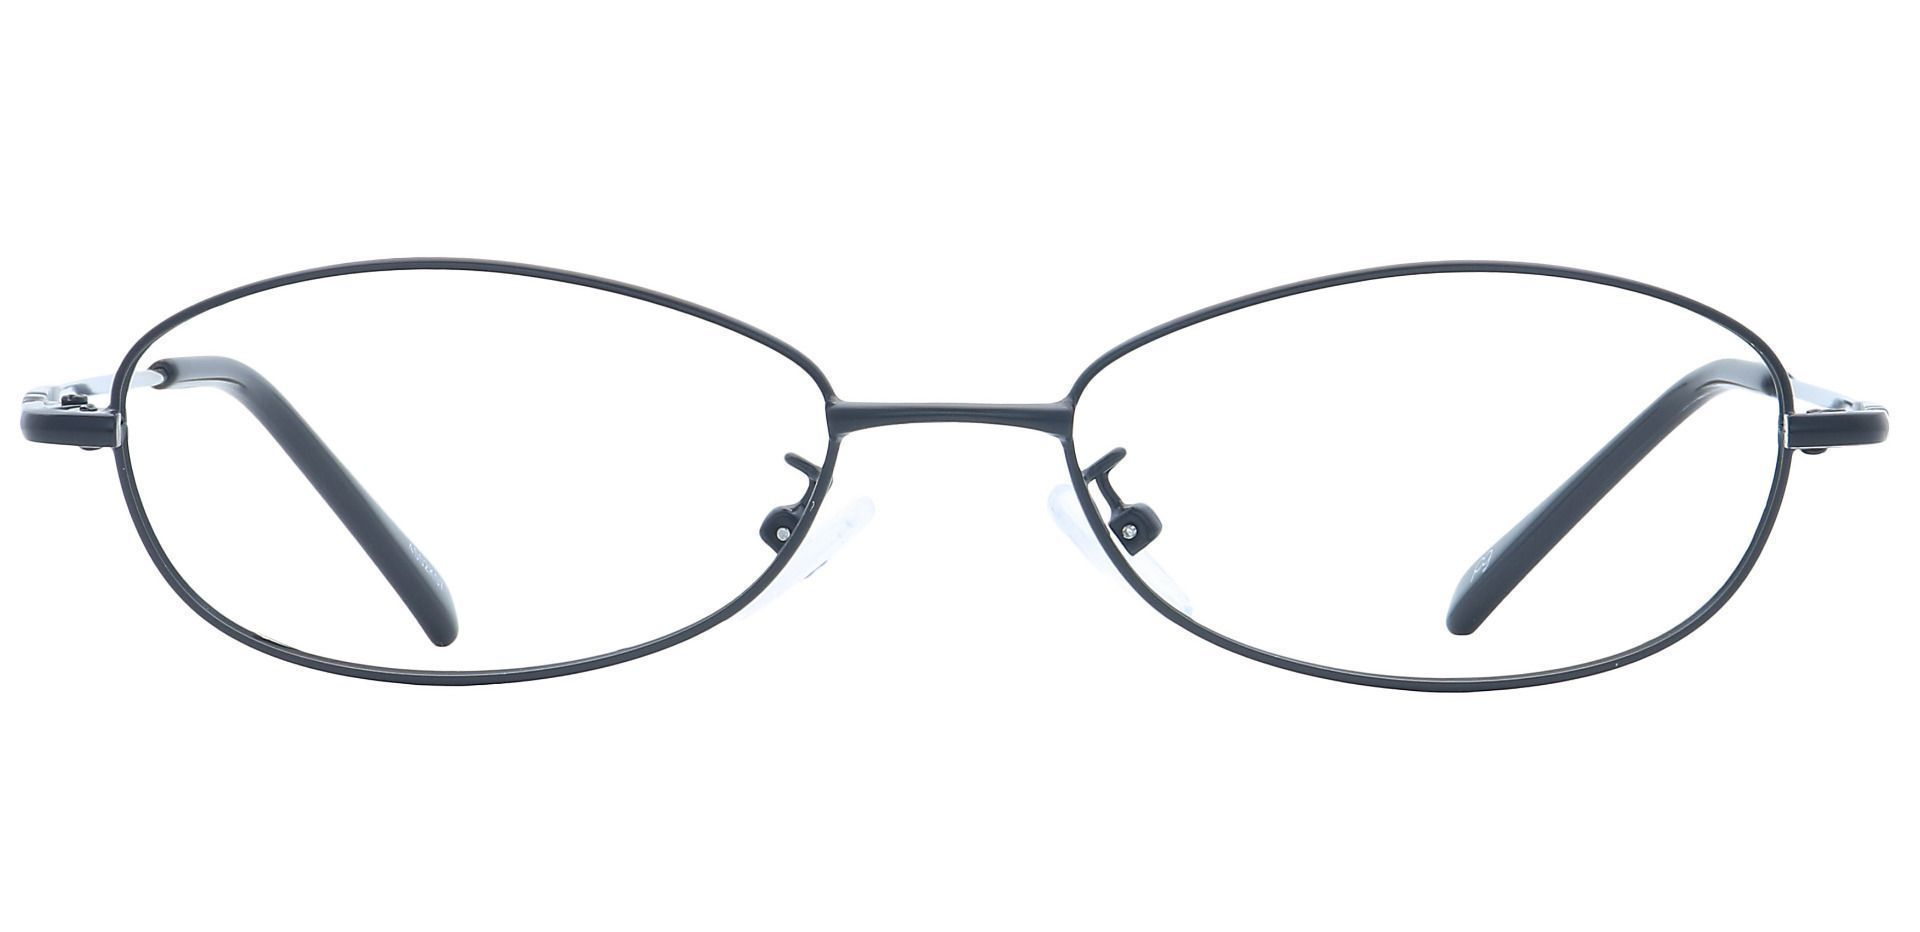 Coronation Oval Blue Light Blocking Glasses - Black